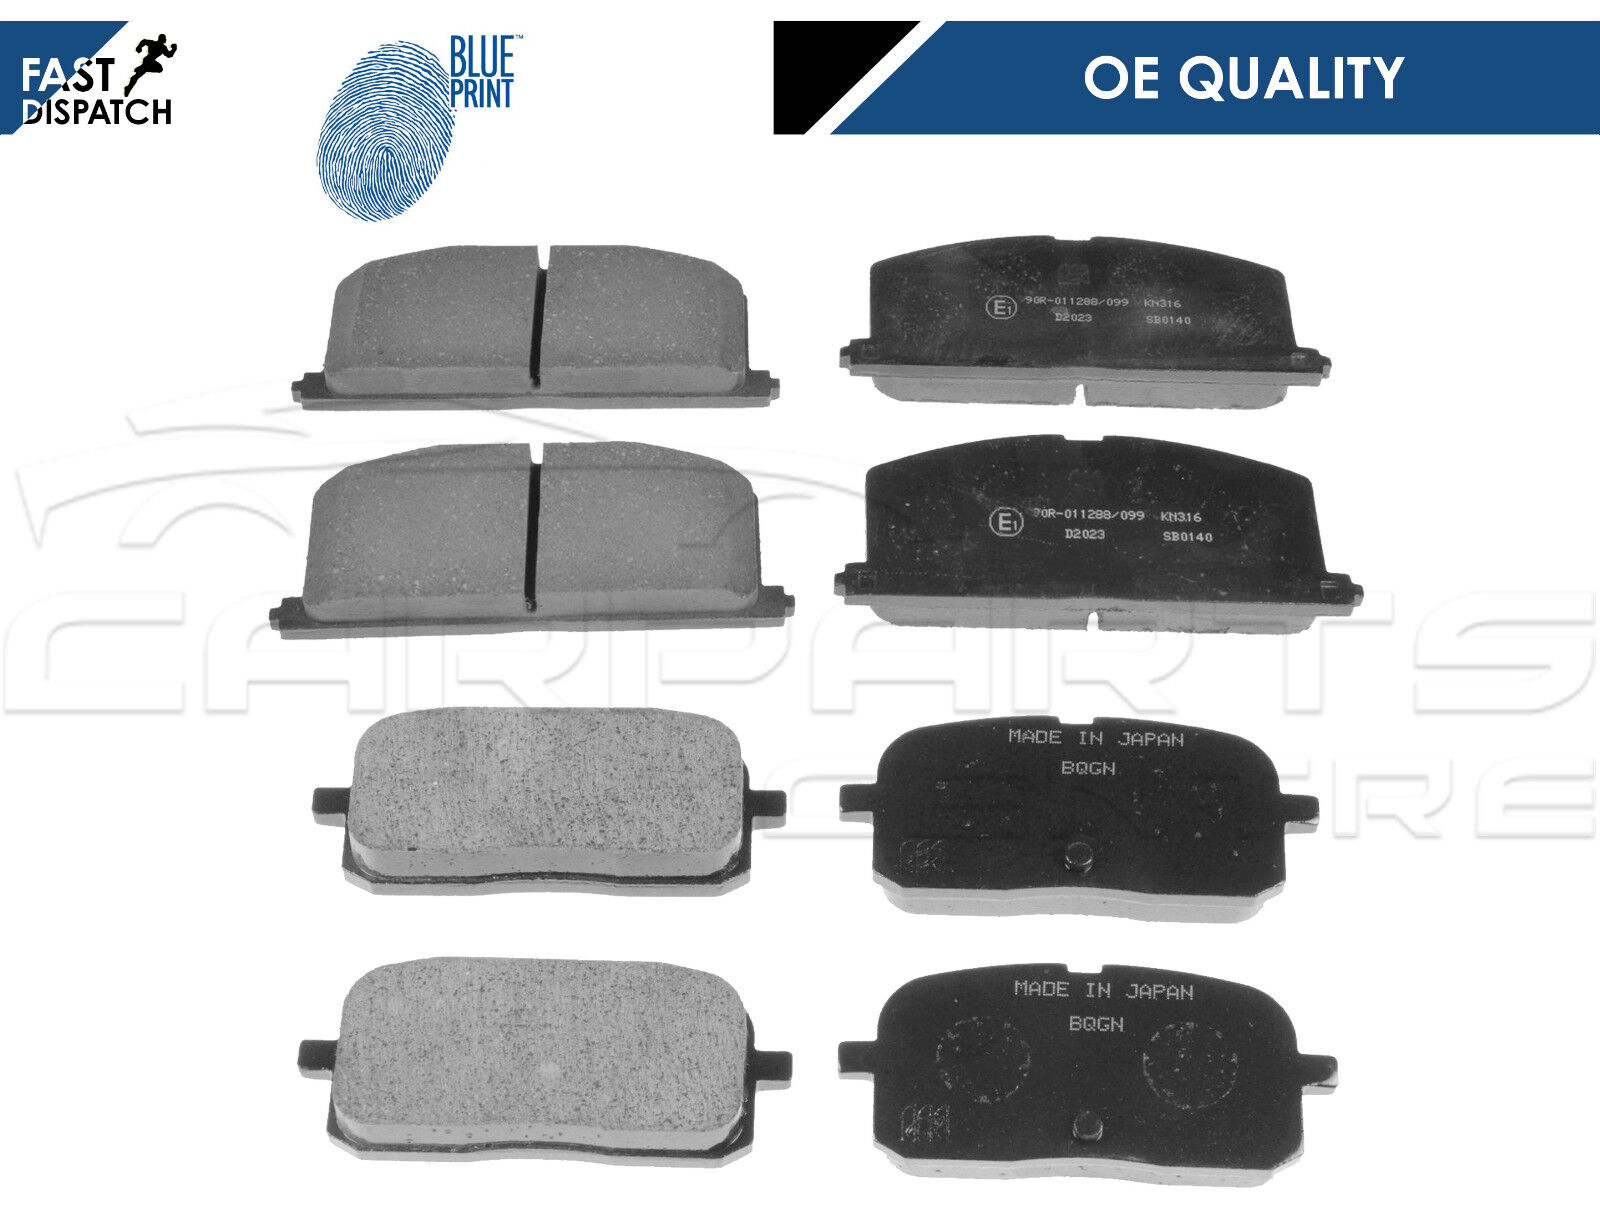 Details about FOR Toyota Starlet GT Turbo Glanza V EP82 EP91 Front & Rear  Brake Pads BLUEPRINT